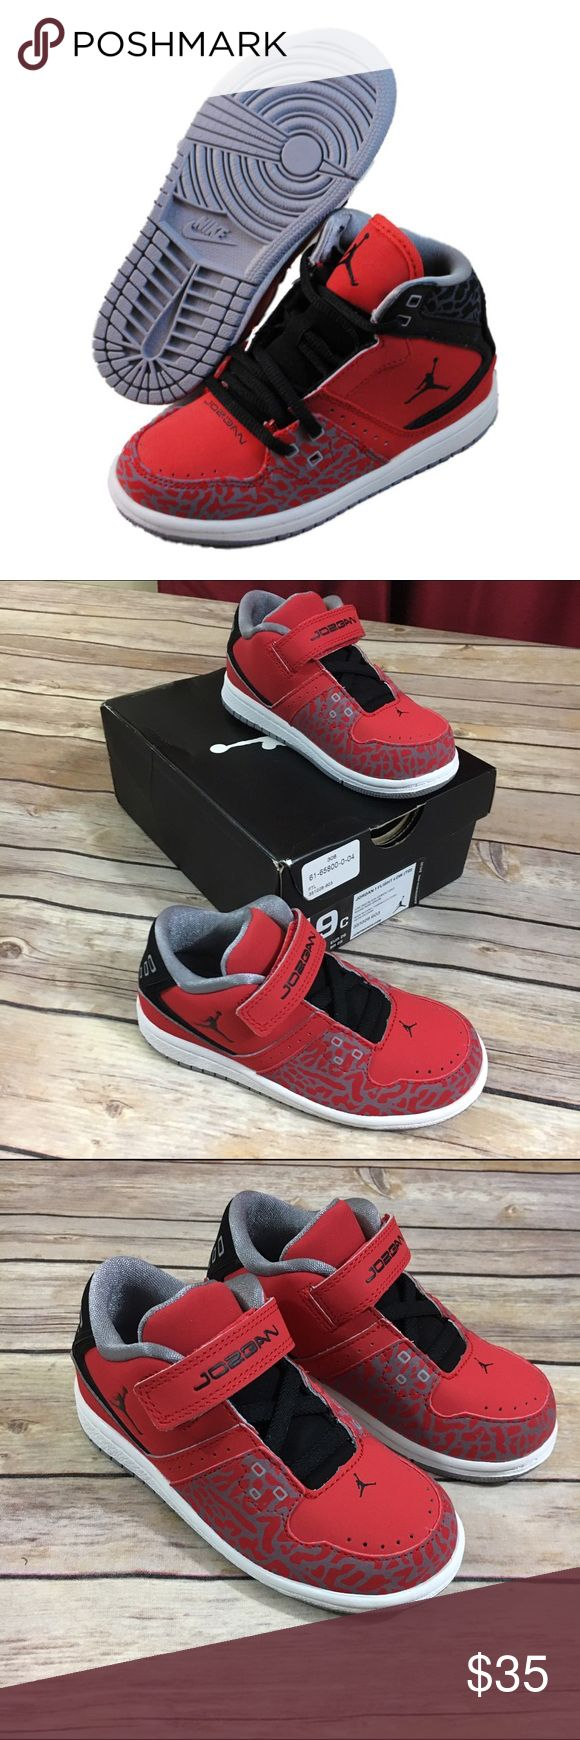 best loved 9d5ea 5bc7c ... Red-Black-Cement Grey NEW Nike Air Jordan 1 Flight Low Toddler 9 Fire  NEW Nike Air Jordan 1 Flight ...